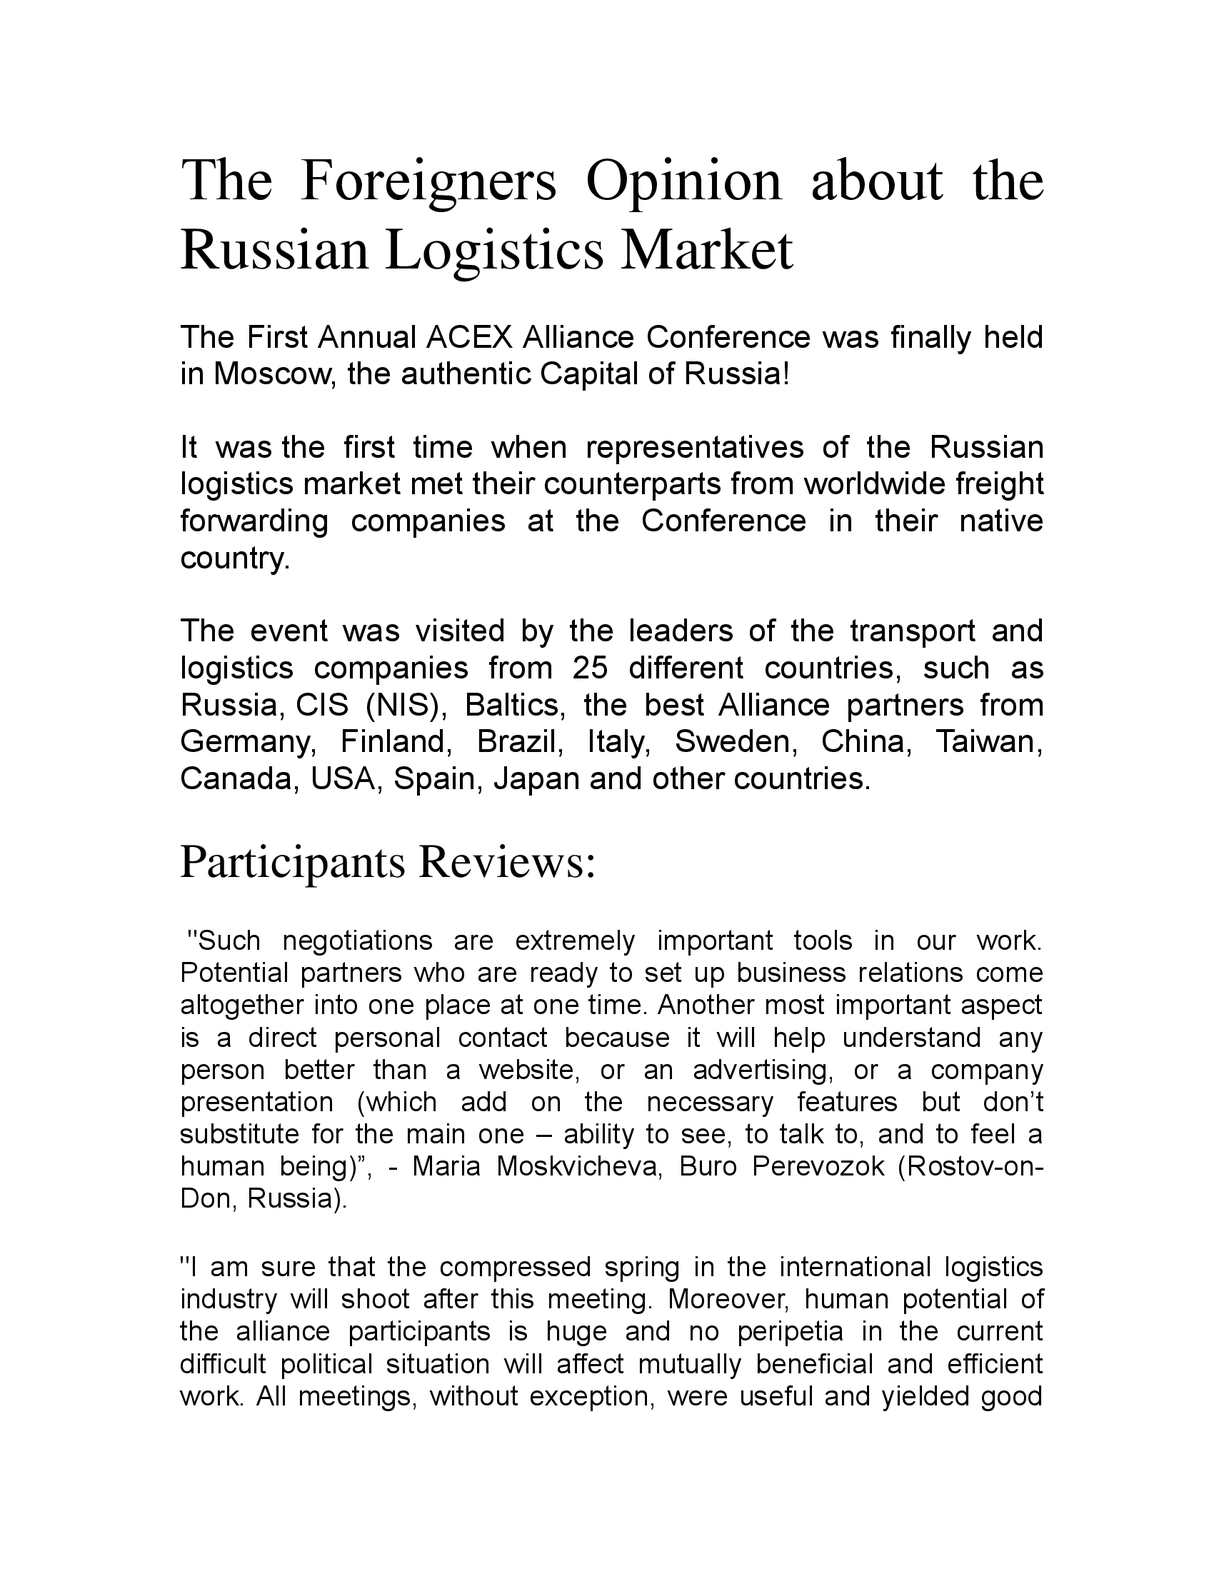 Calaméo - The Foreigners Opinion about the Russian Logistics